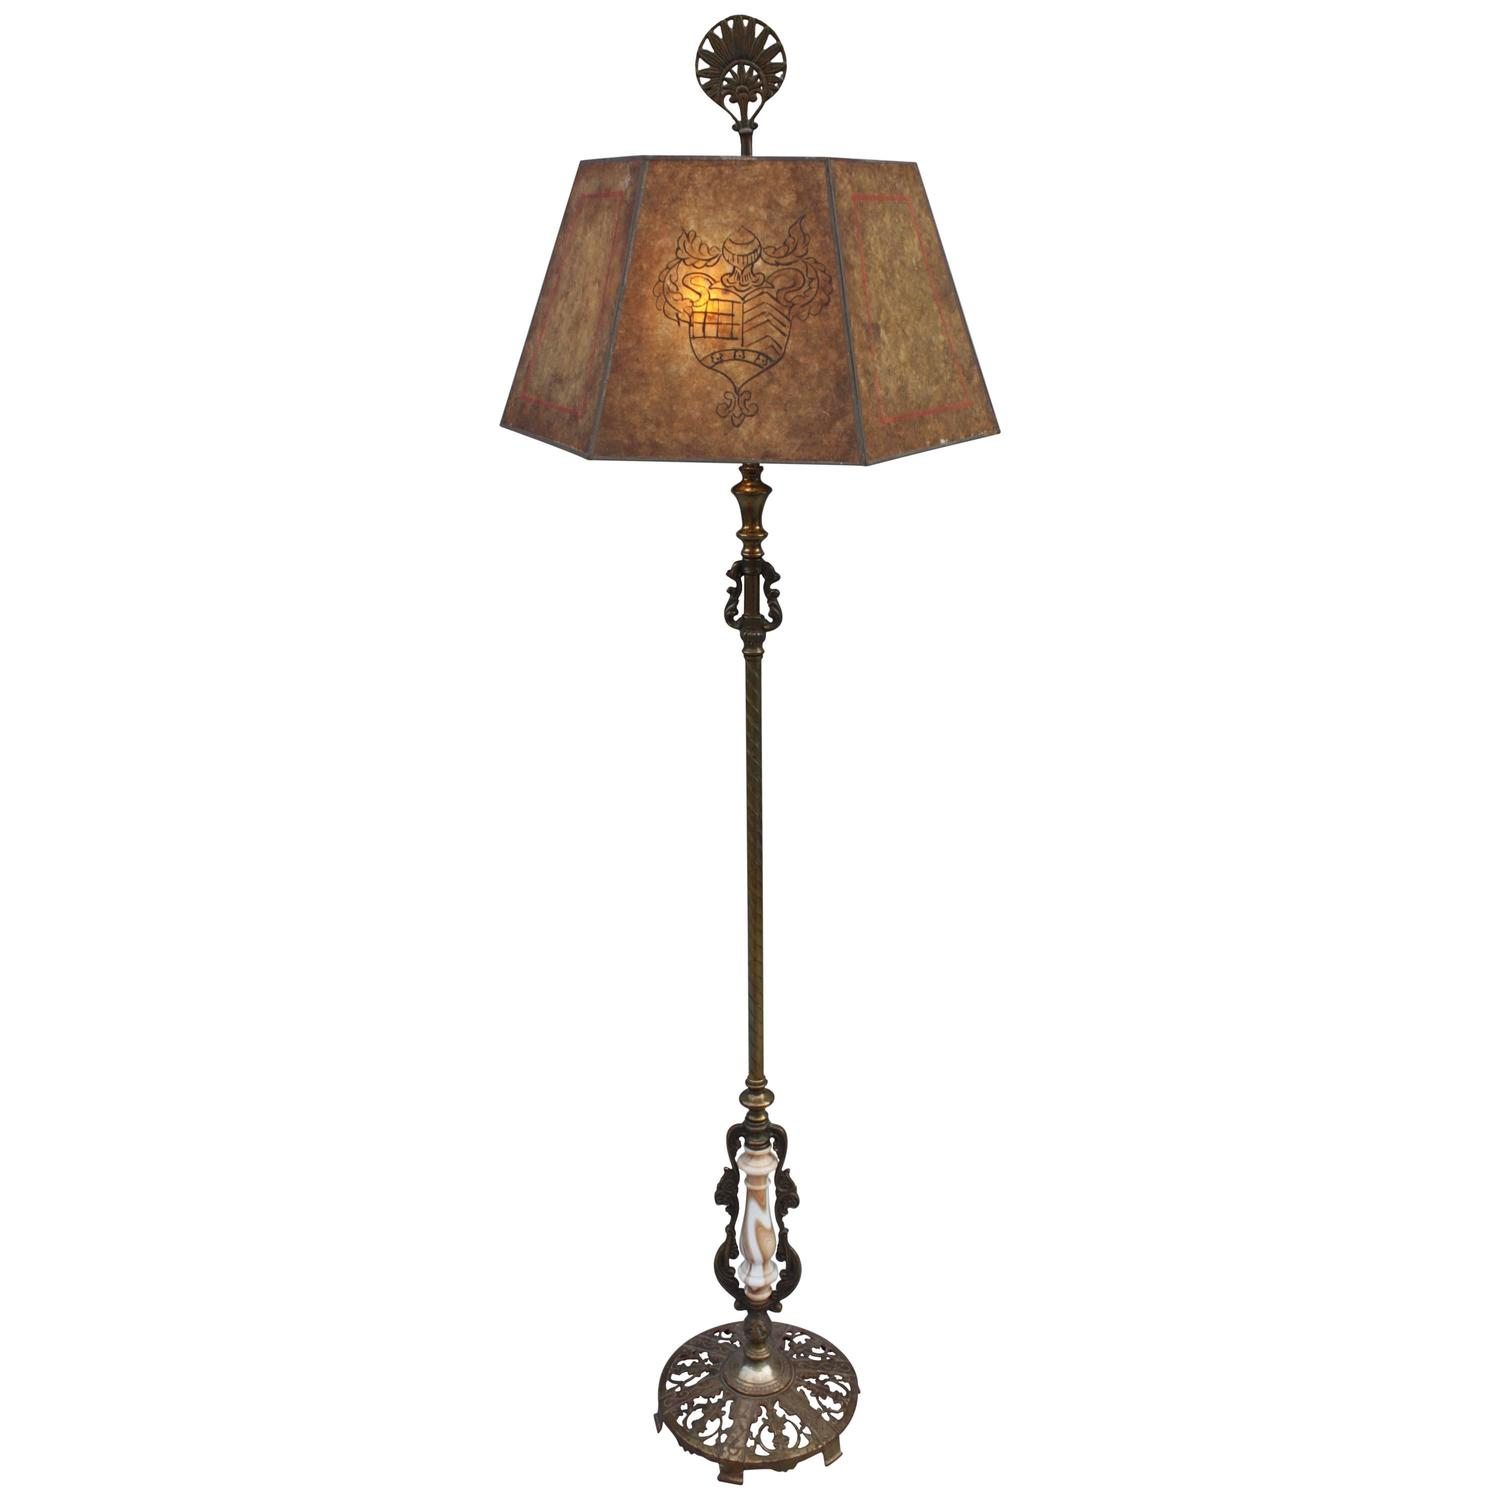 1920s large scale spanish revival floor lamp for sale at for 1920s floor lamps